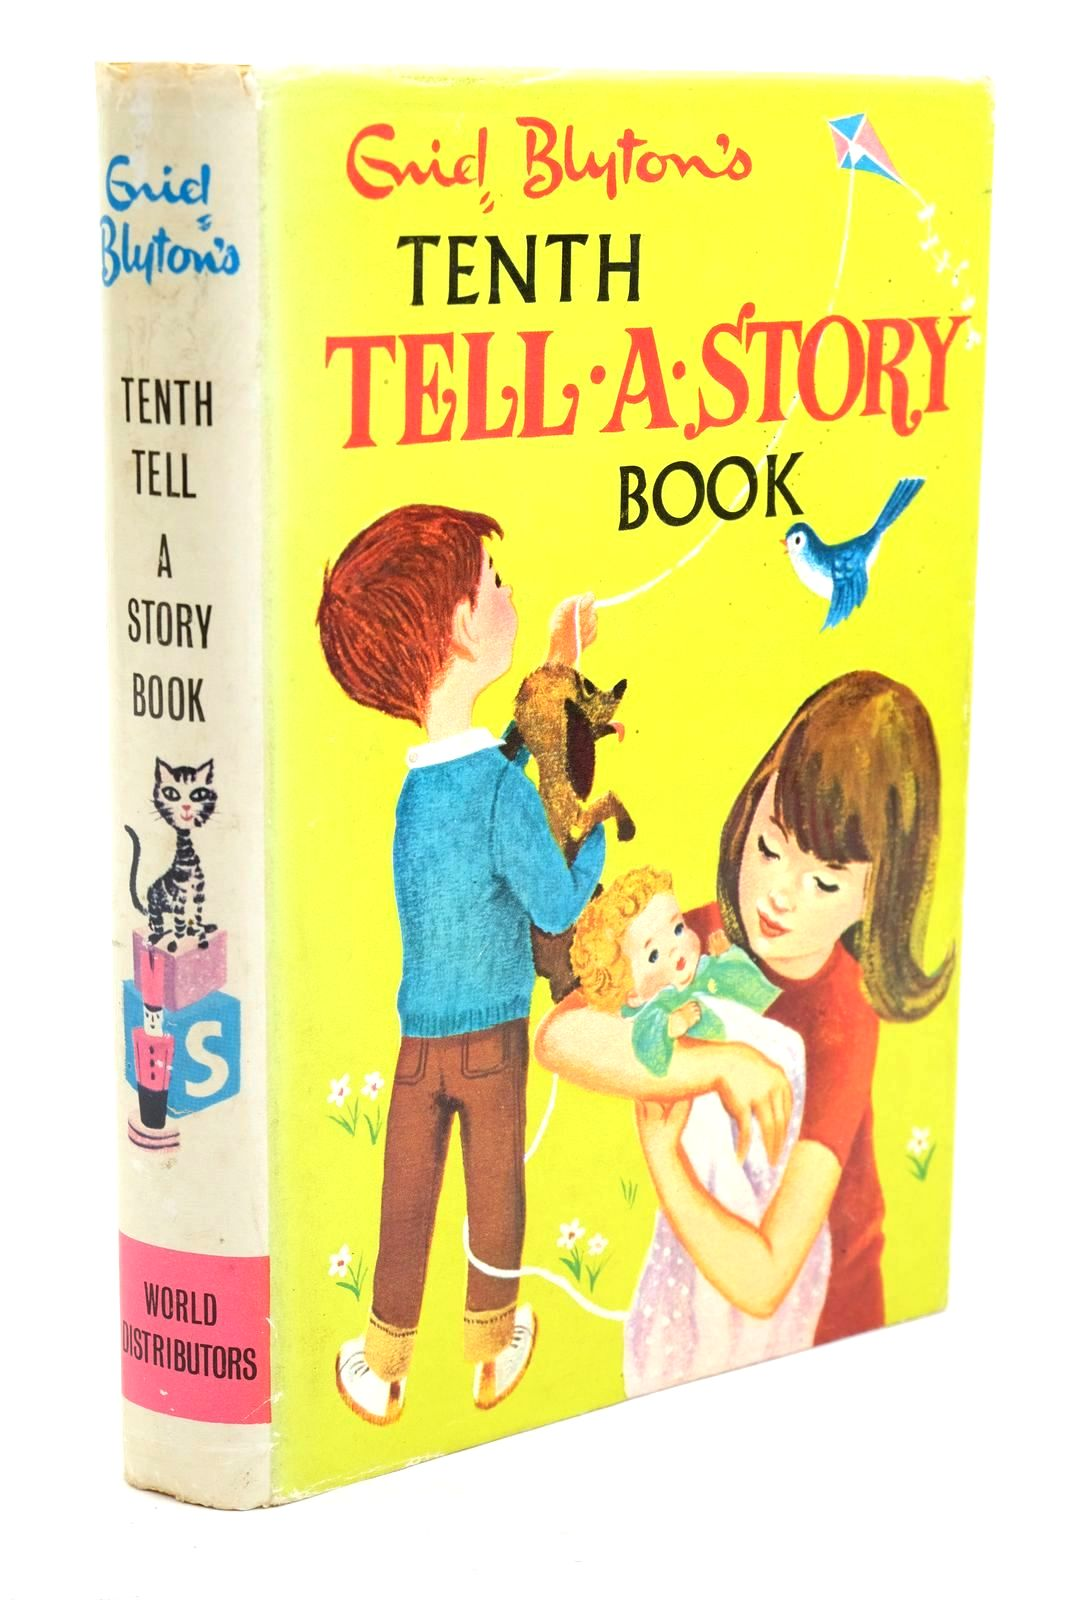 Photo of ENID BLYTON'S TENTH TELL-A-STORY BOOK written by Blyton, Enid published by World Distributors Ltd. (STOCK CODE: 1321092)  for sale by Stella & Rose's Books